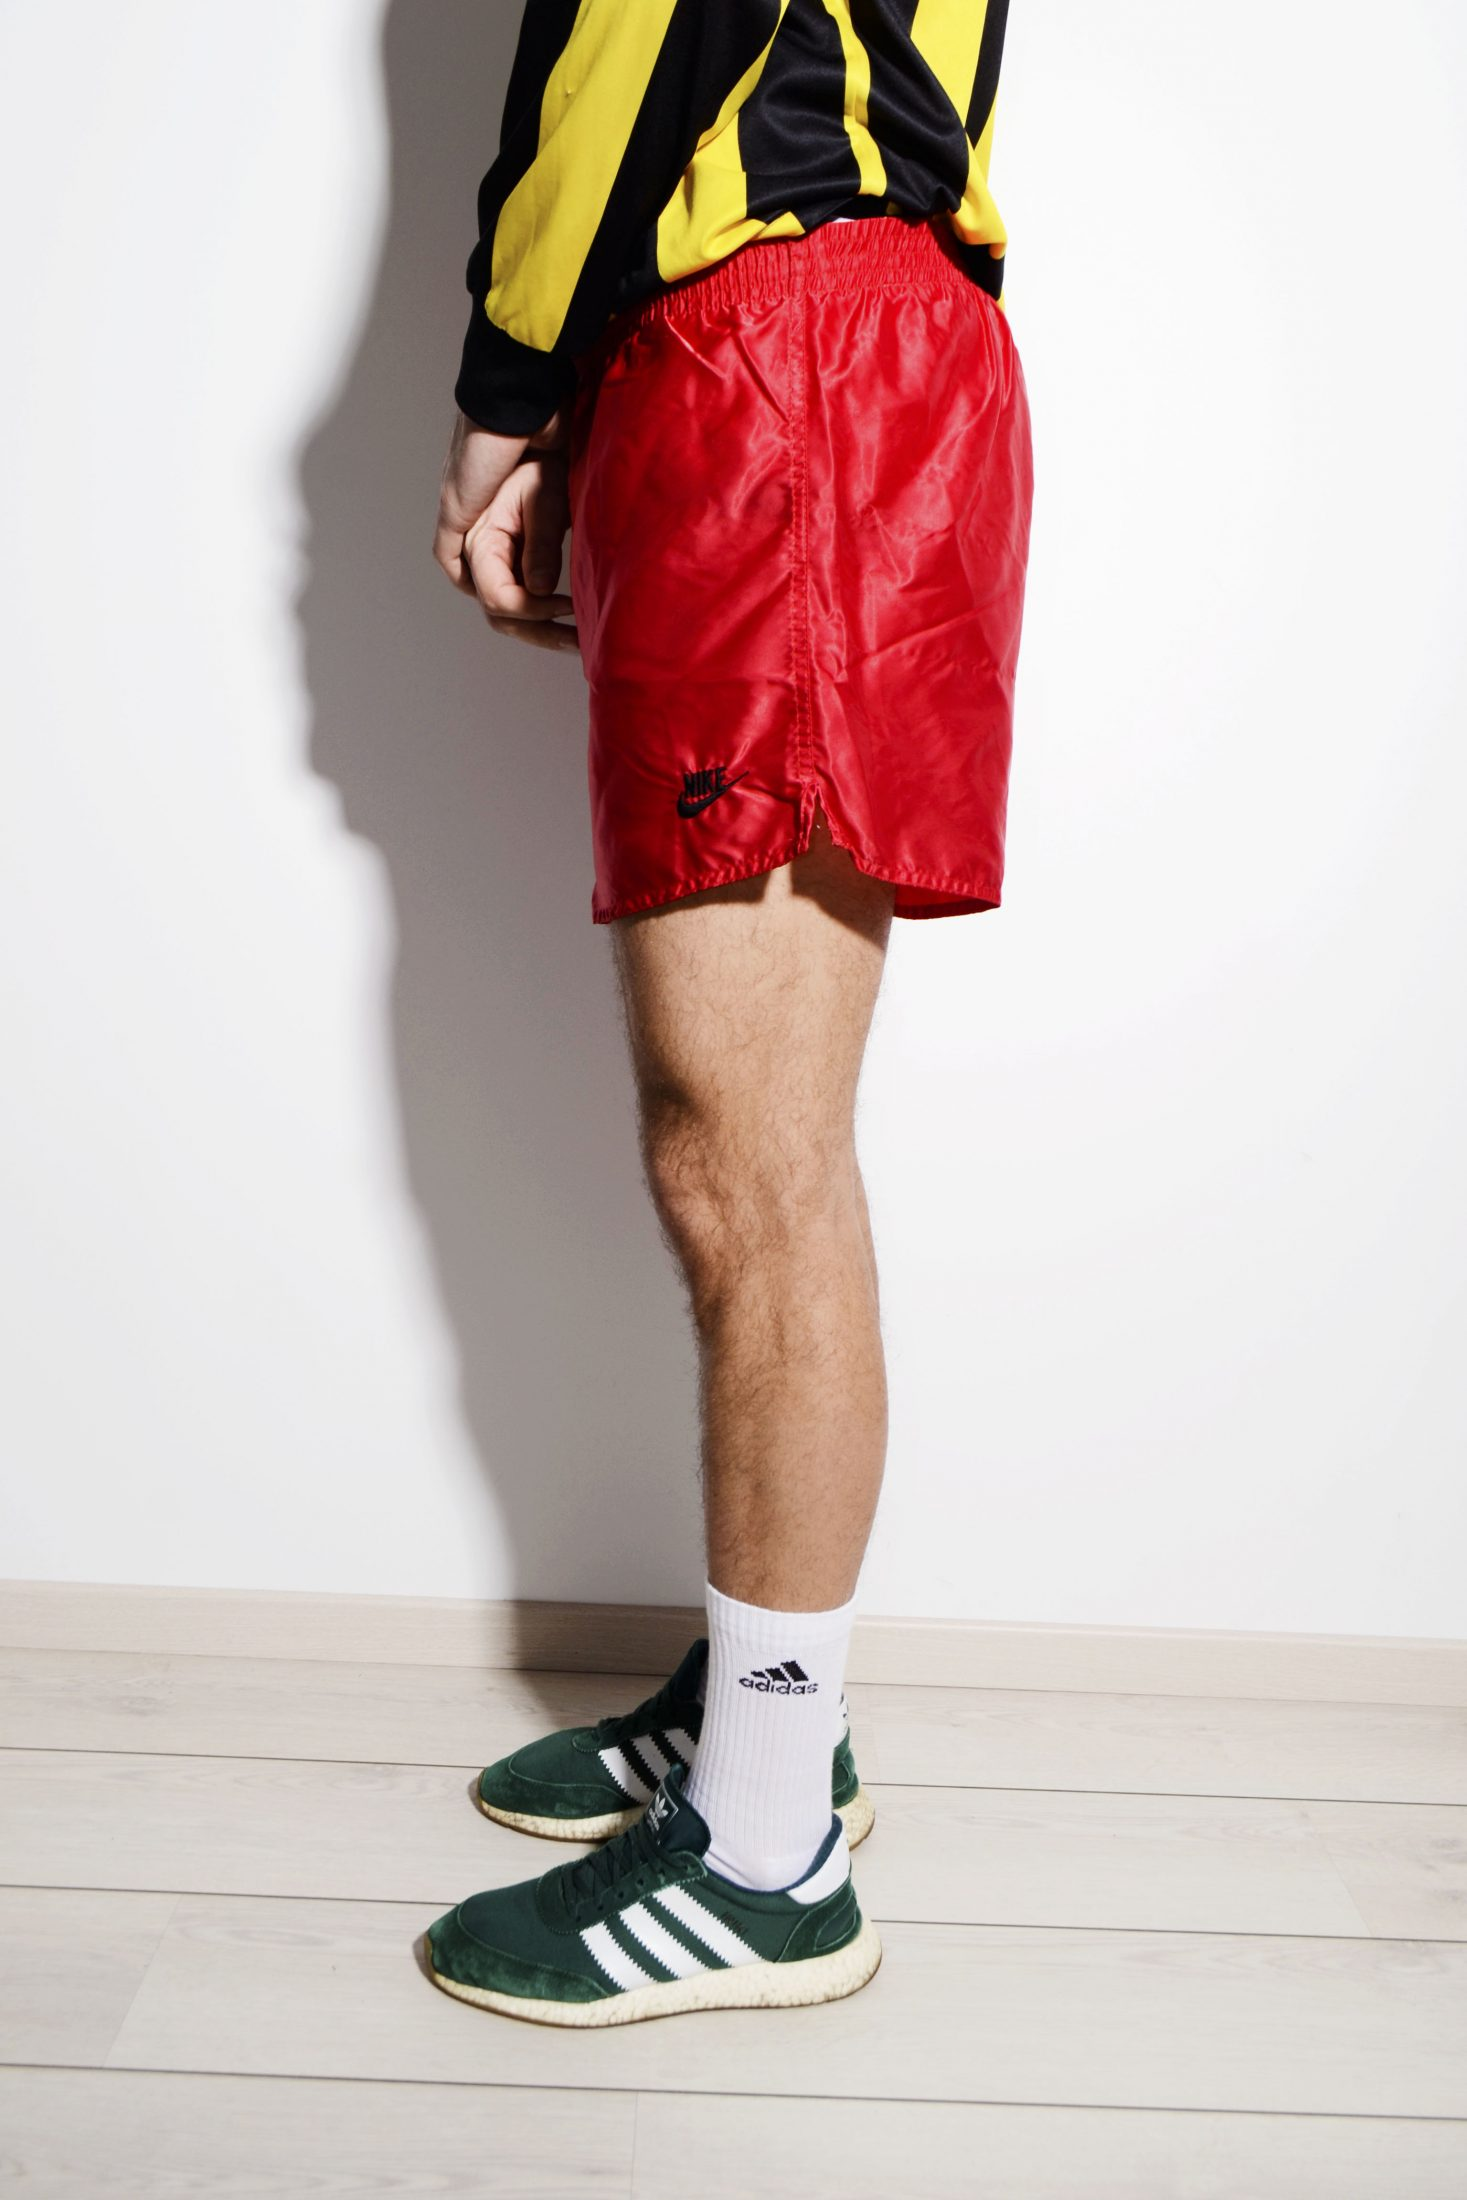 5be1a1a4b9 Adidas vintage shorts mens | HOT MILK vintage clothing online store ...